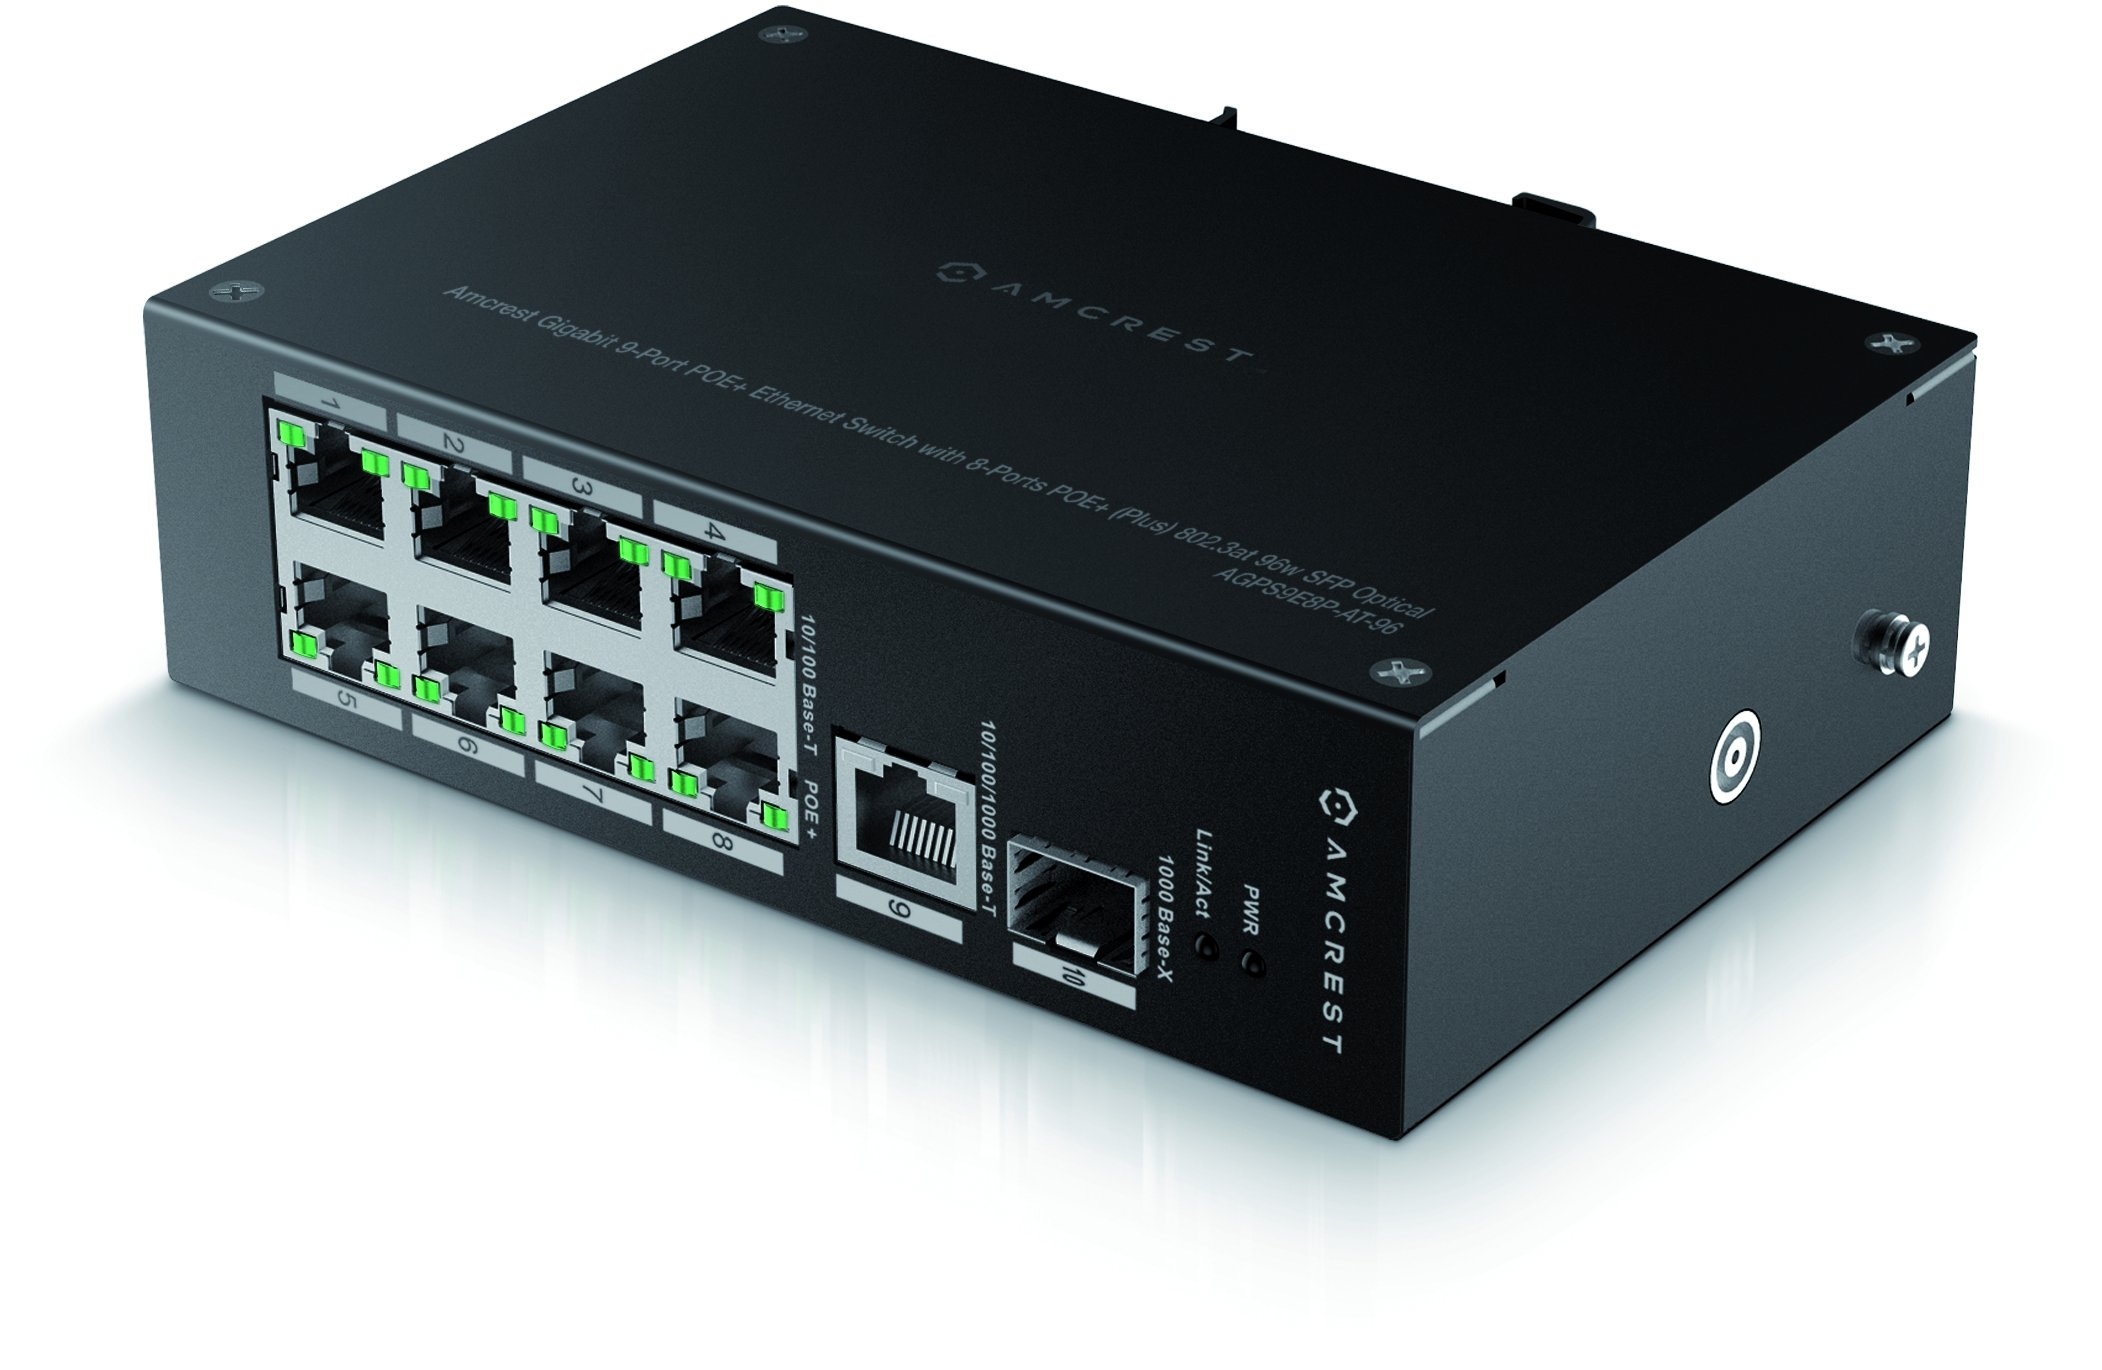 Amcrest Gigabit Uplink 9-Port POE+ Ethernet Switch Metal Housing, 8-Ports POE+ (Plus) 802.3at 96w SFP Optical (AGPS9E8P-AT-96)